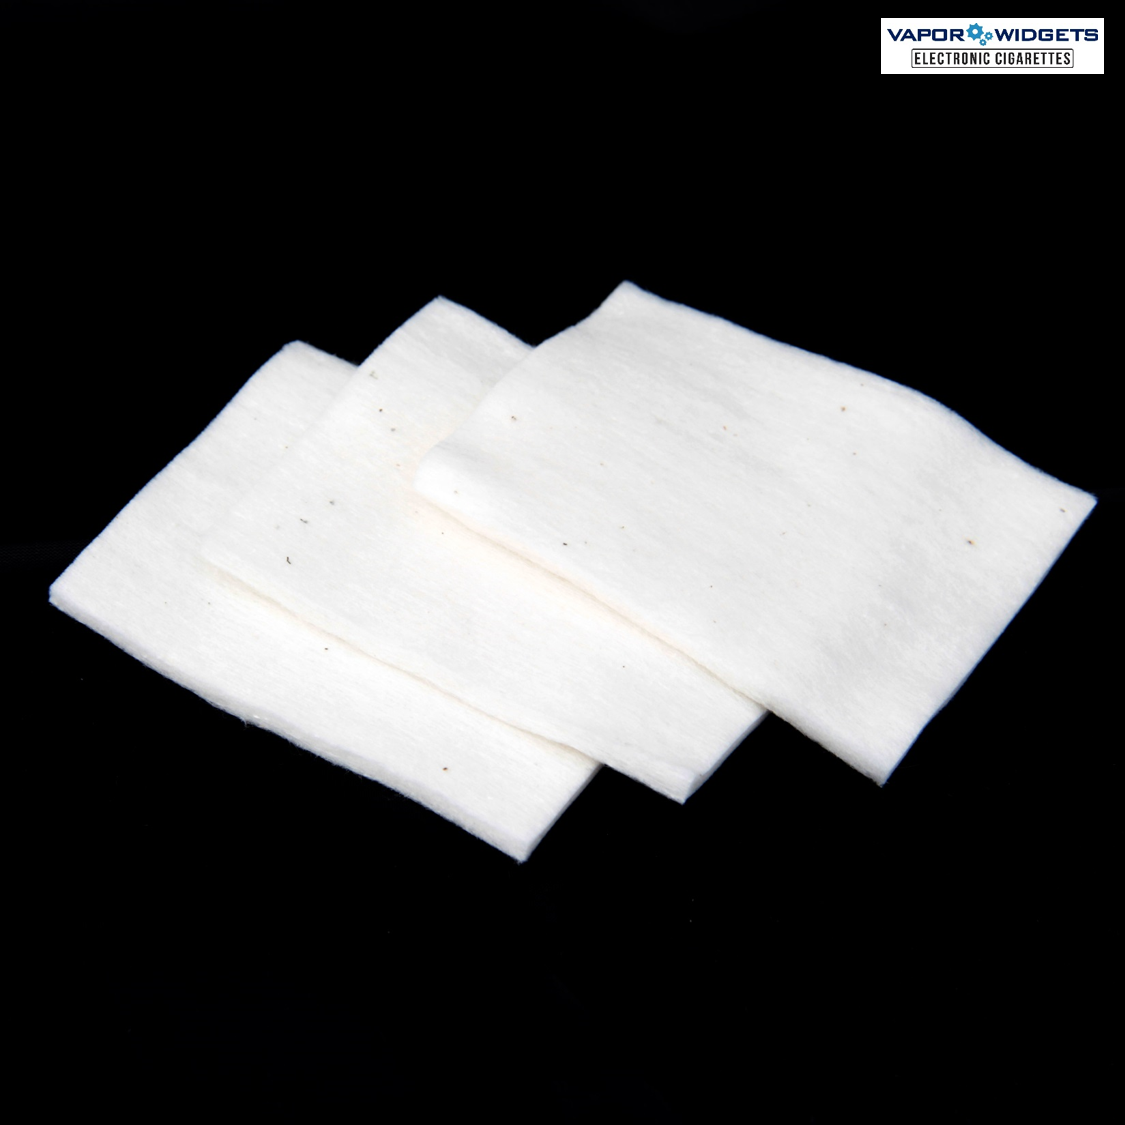 100% organic Japanese cotton pads for vaping | Vapor Widgets